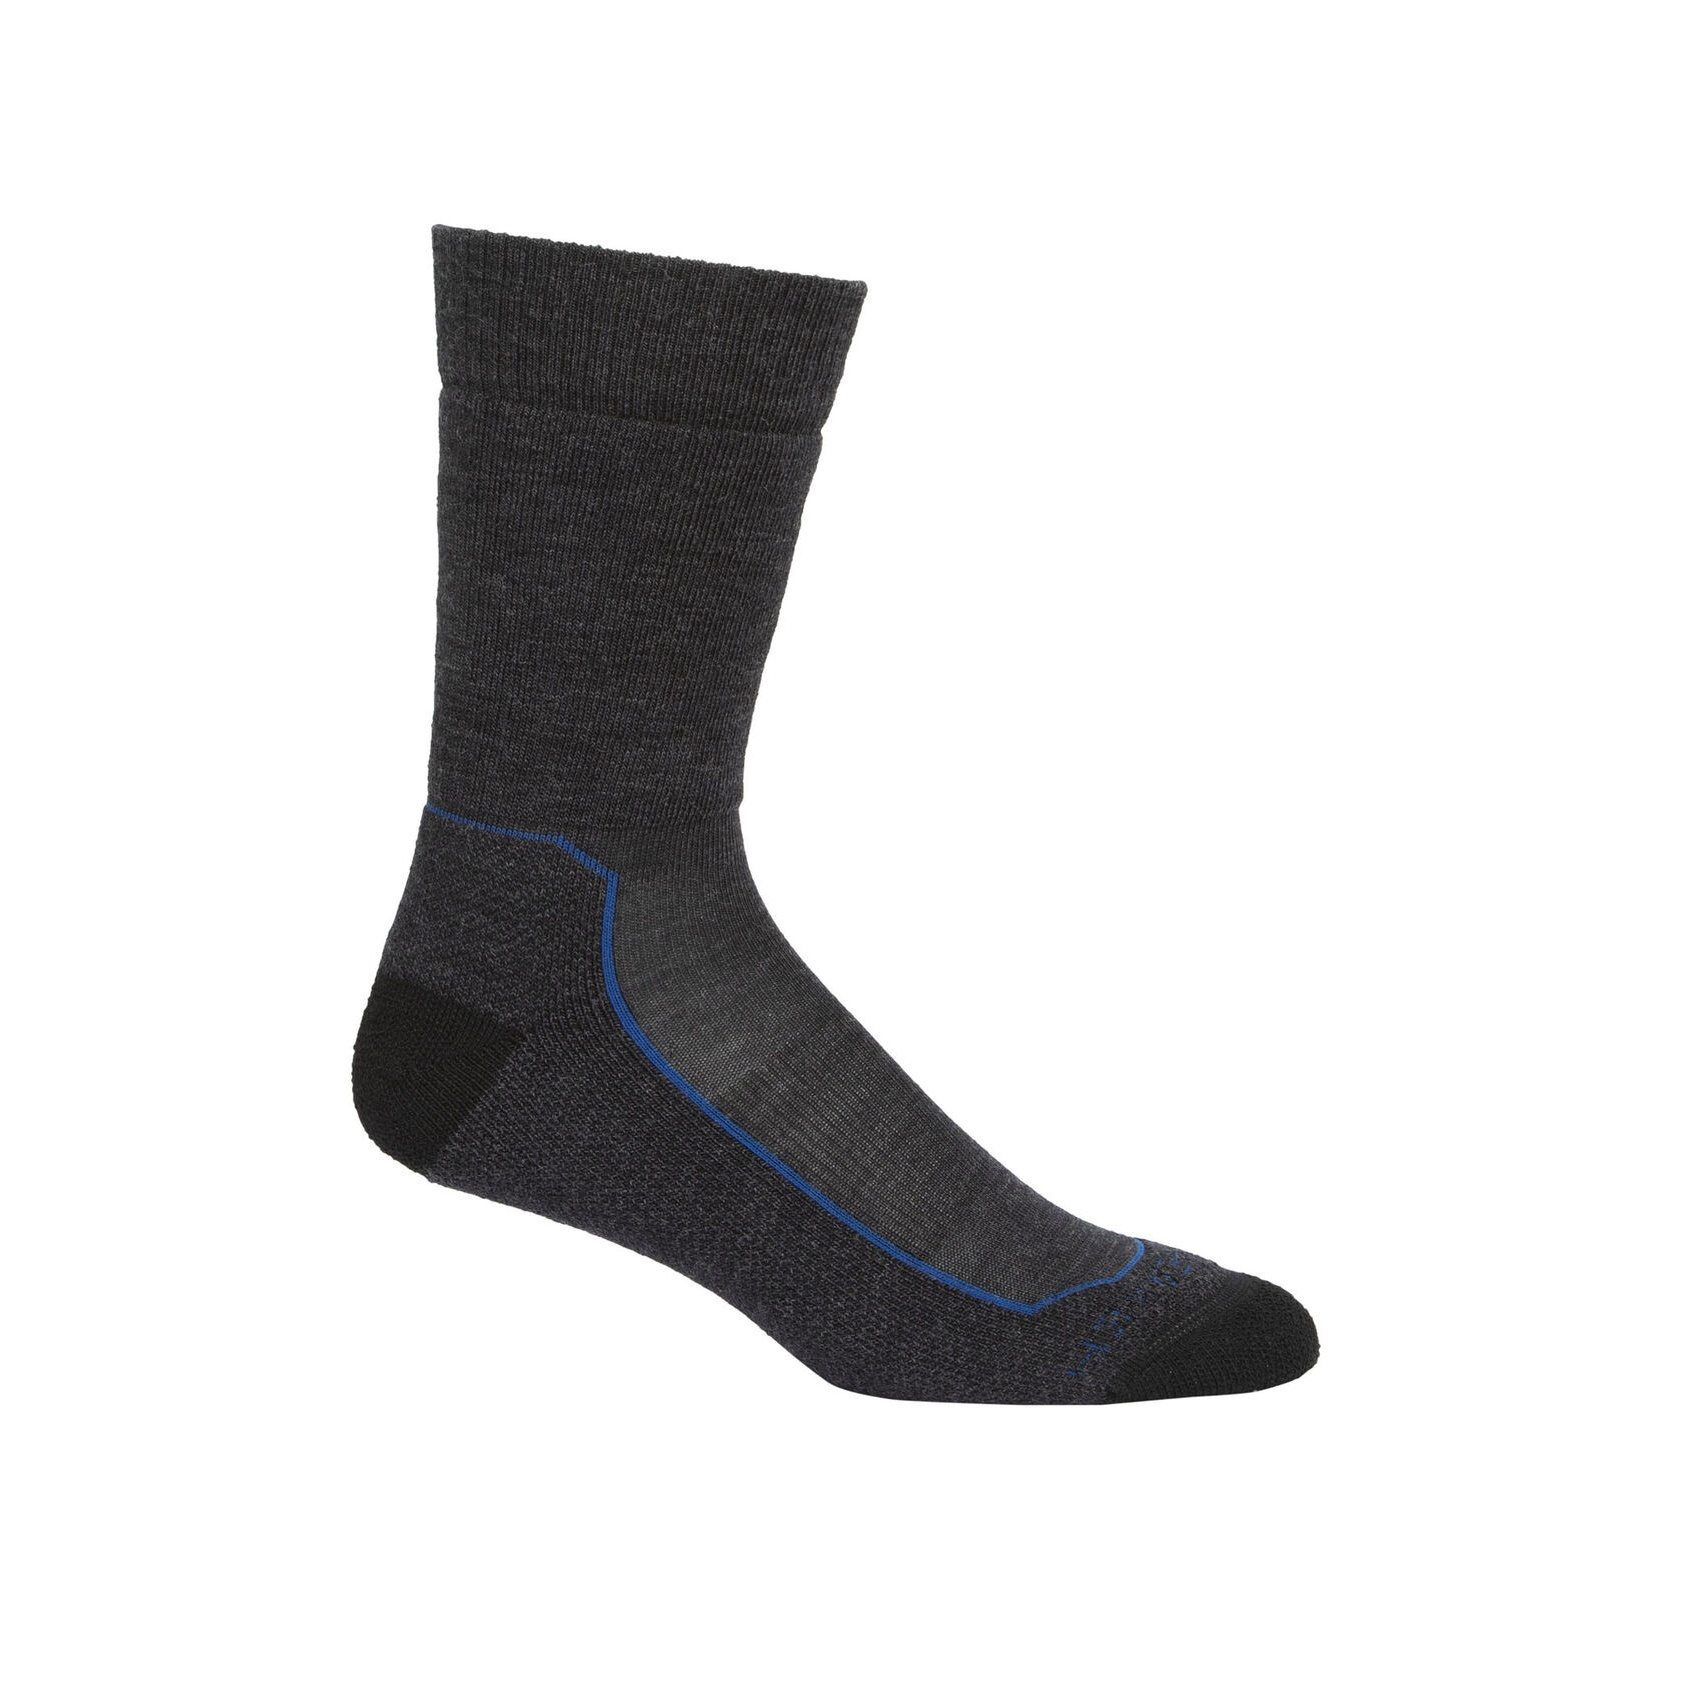 Hike+ Medium Crew Sock - Men's